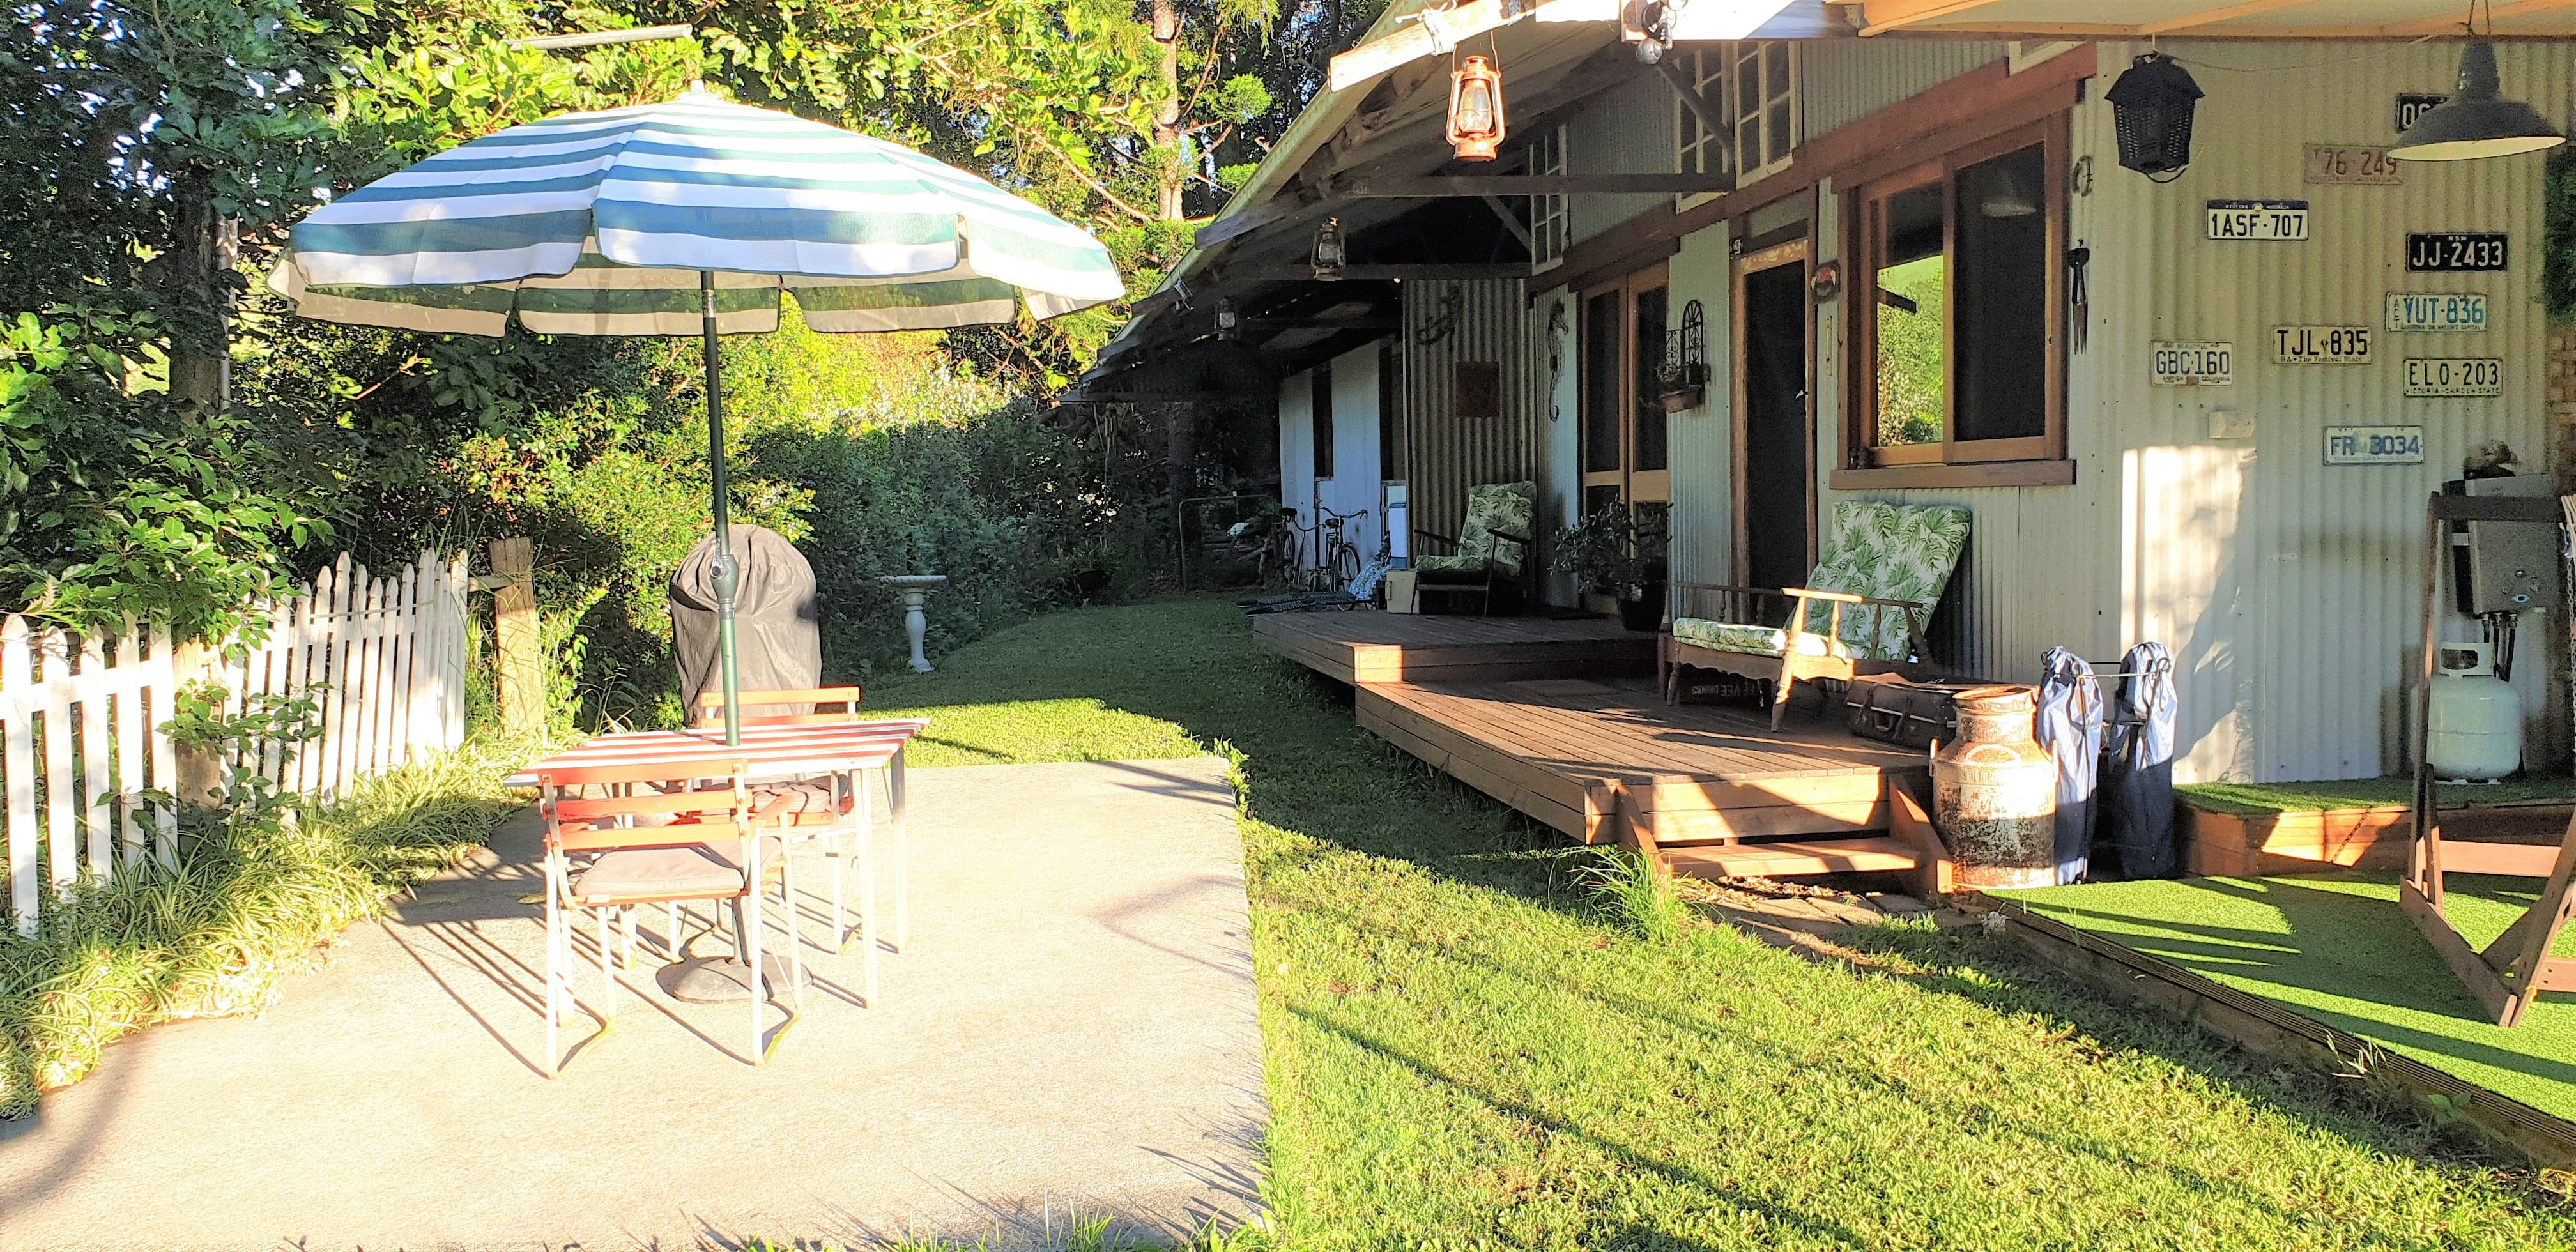 Spacious outdoor area complete with BBQ, retro tab gallery image